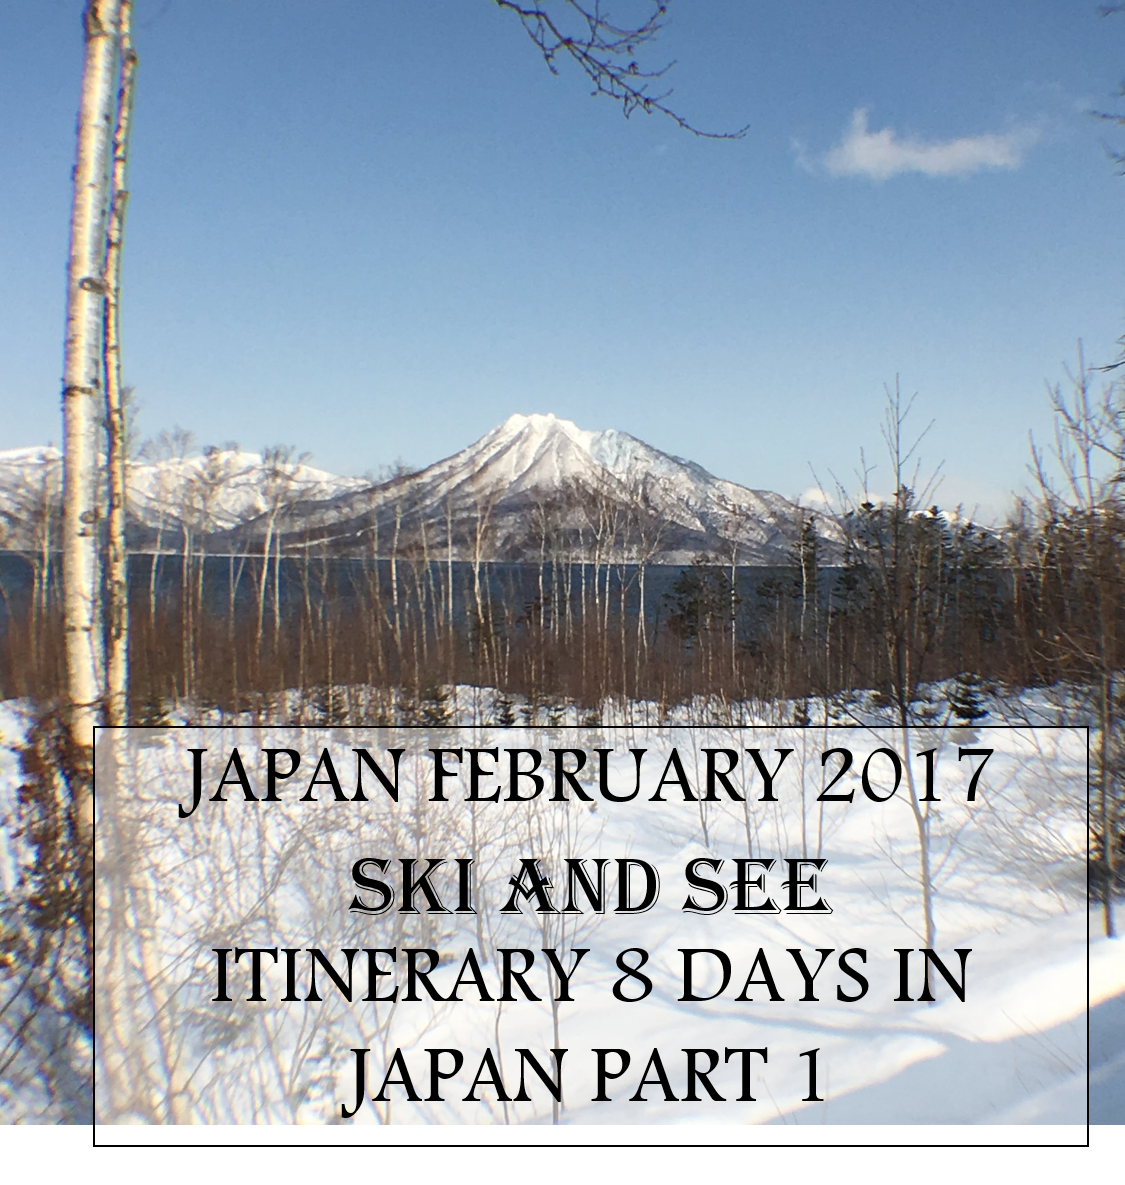 Japan February 2017 Ski and See Itinerary 8 days in Japan